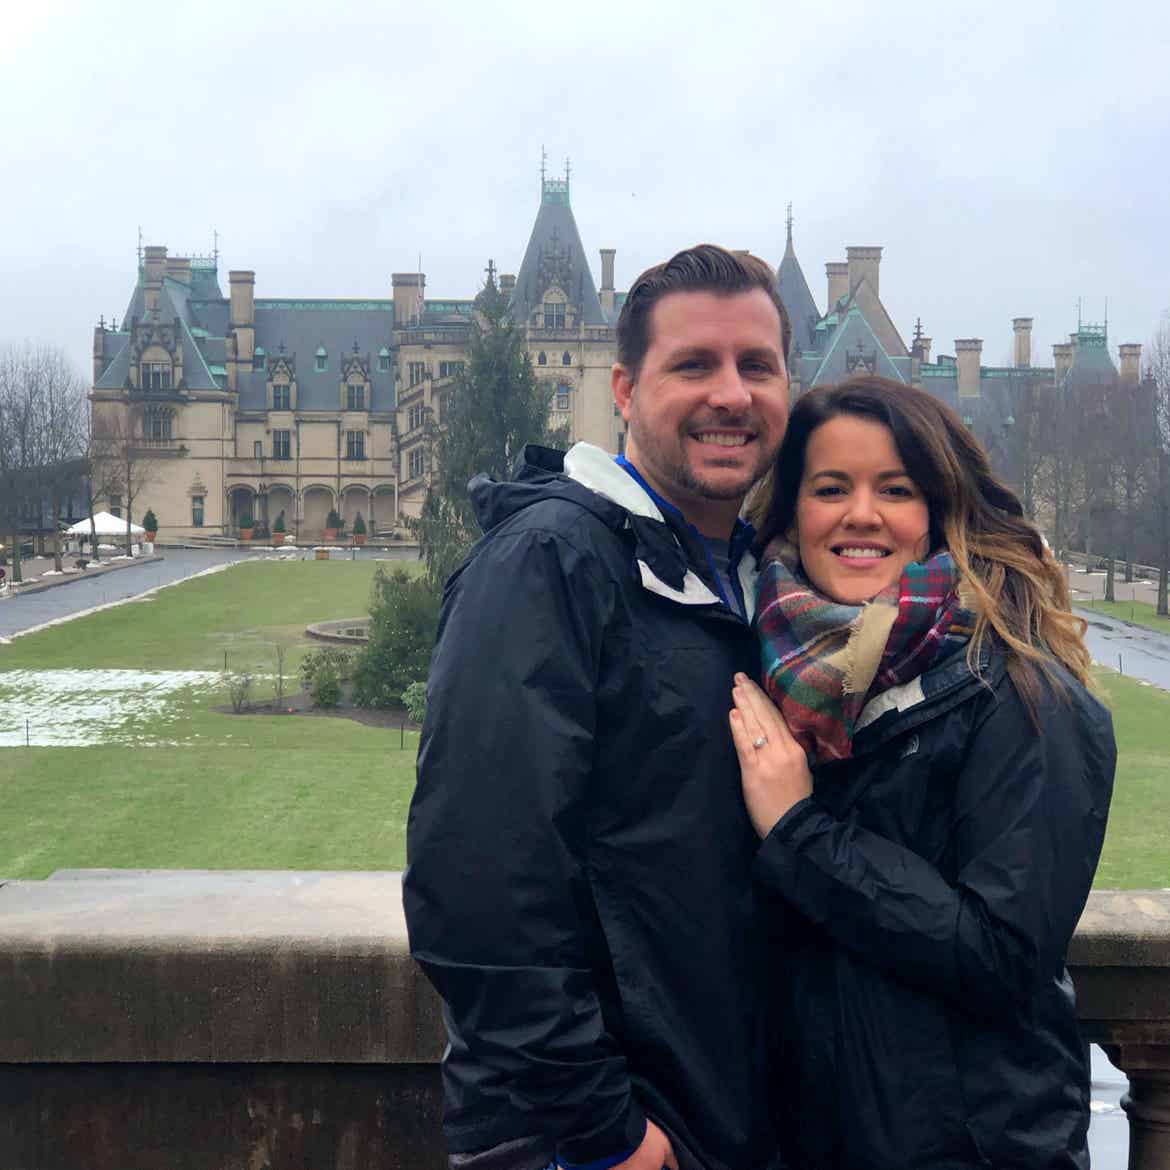 Author, Jenn C. Harmon (right), and husband (left) stand in front of the Biltmore Estate wearing black jackets and a scarf on a grey cloudy day.